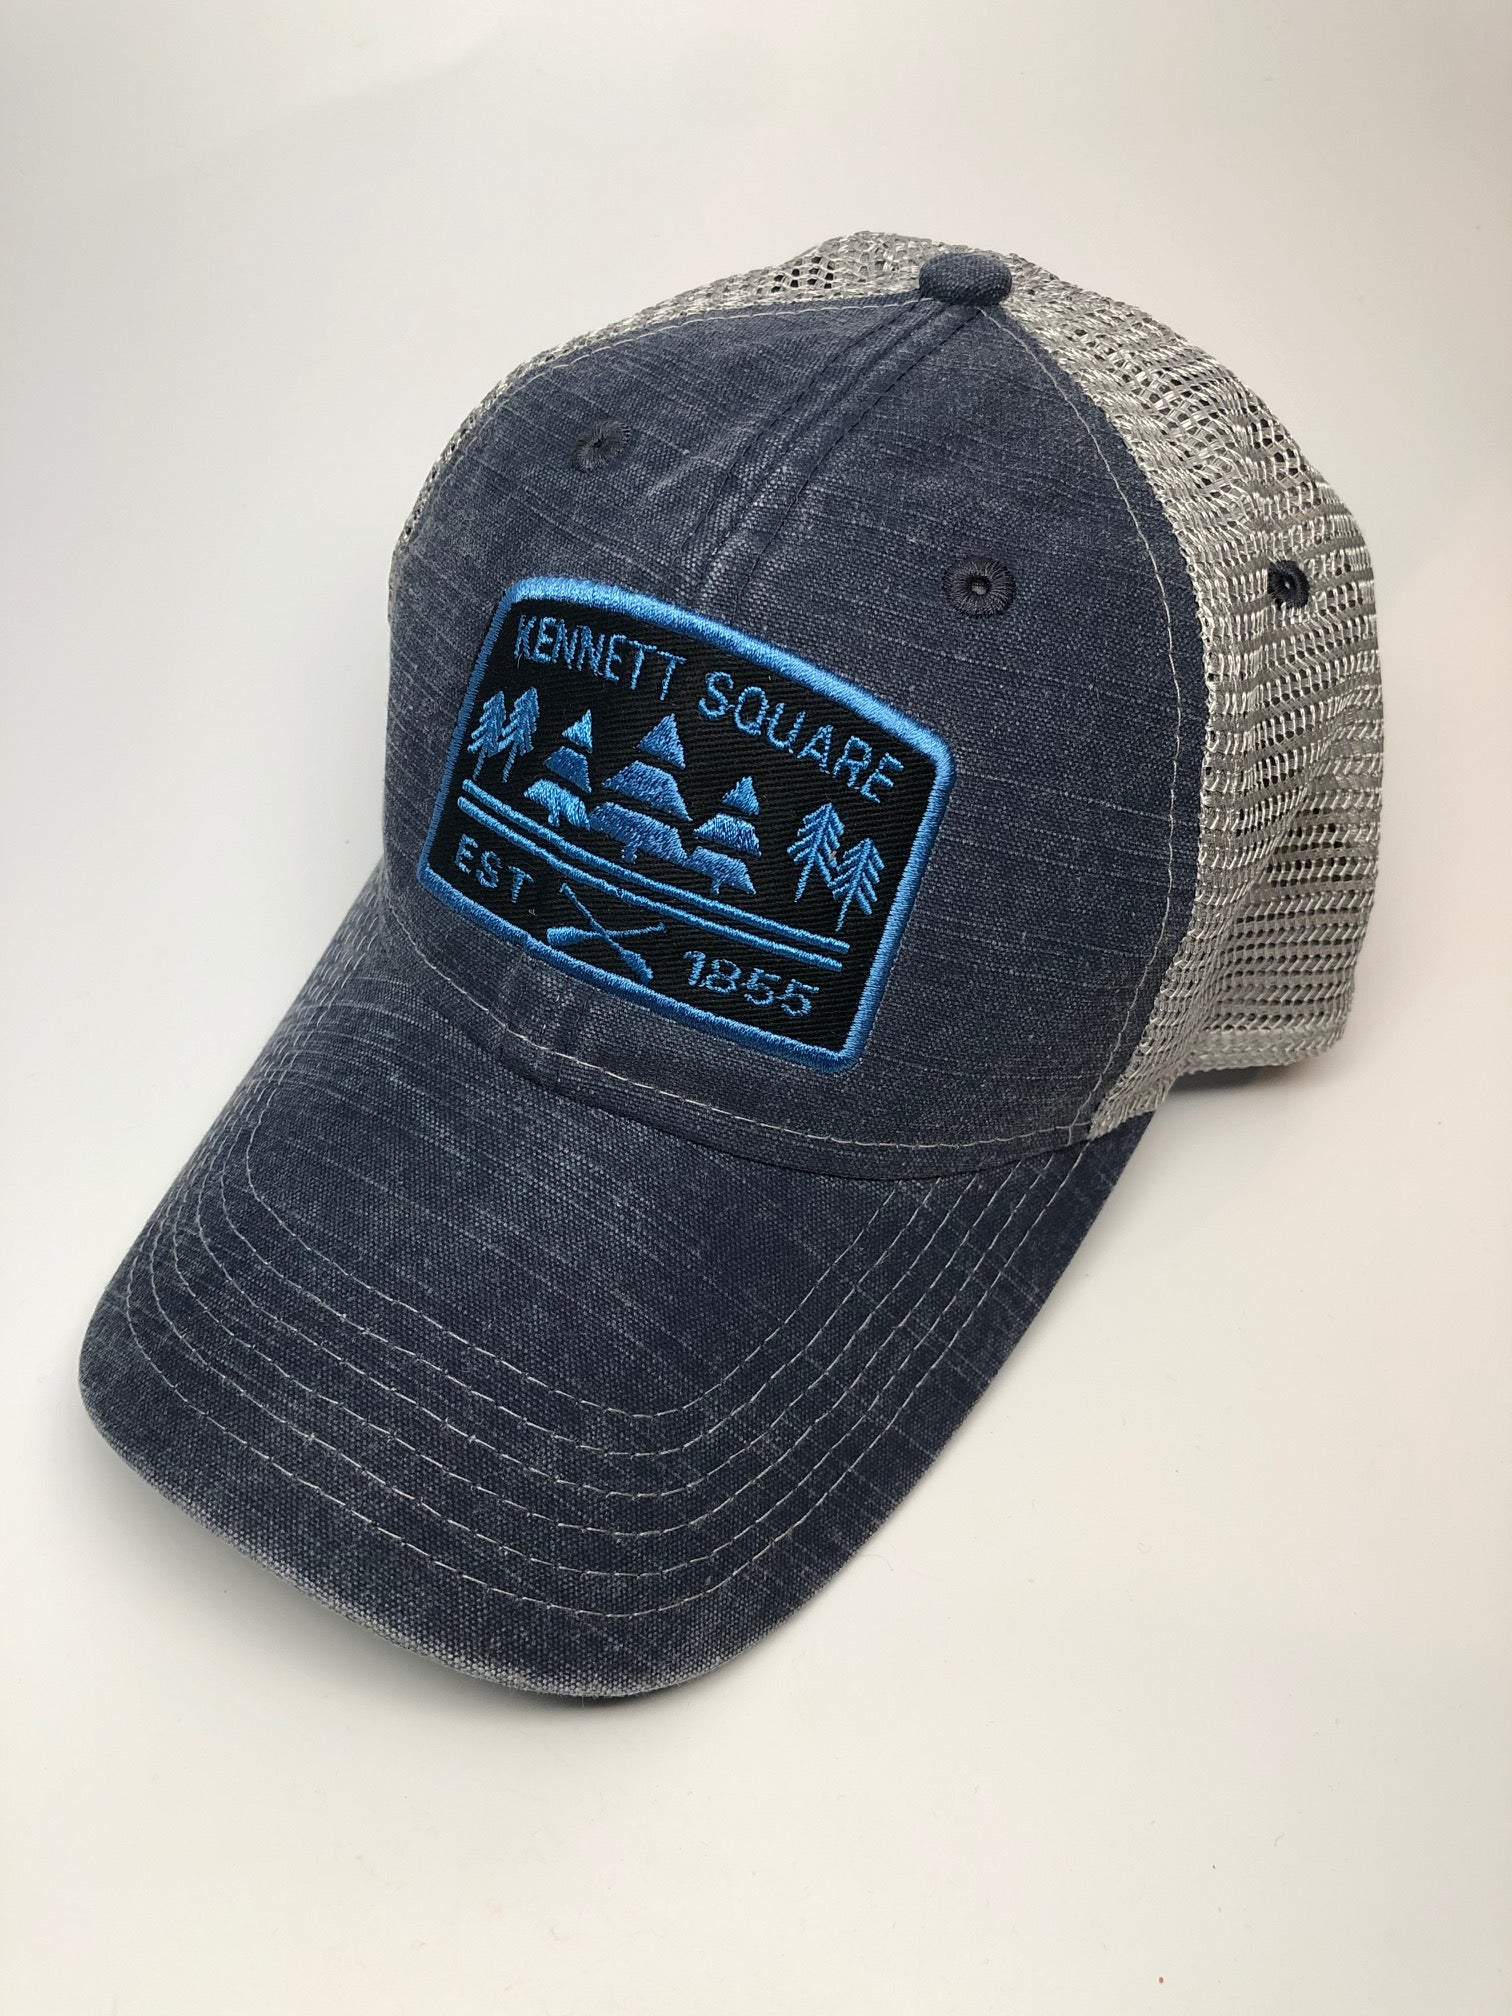 Kennett Square Stone Washed Pines Vintage Snap Back Hat